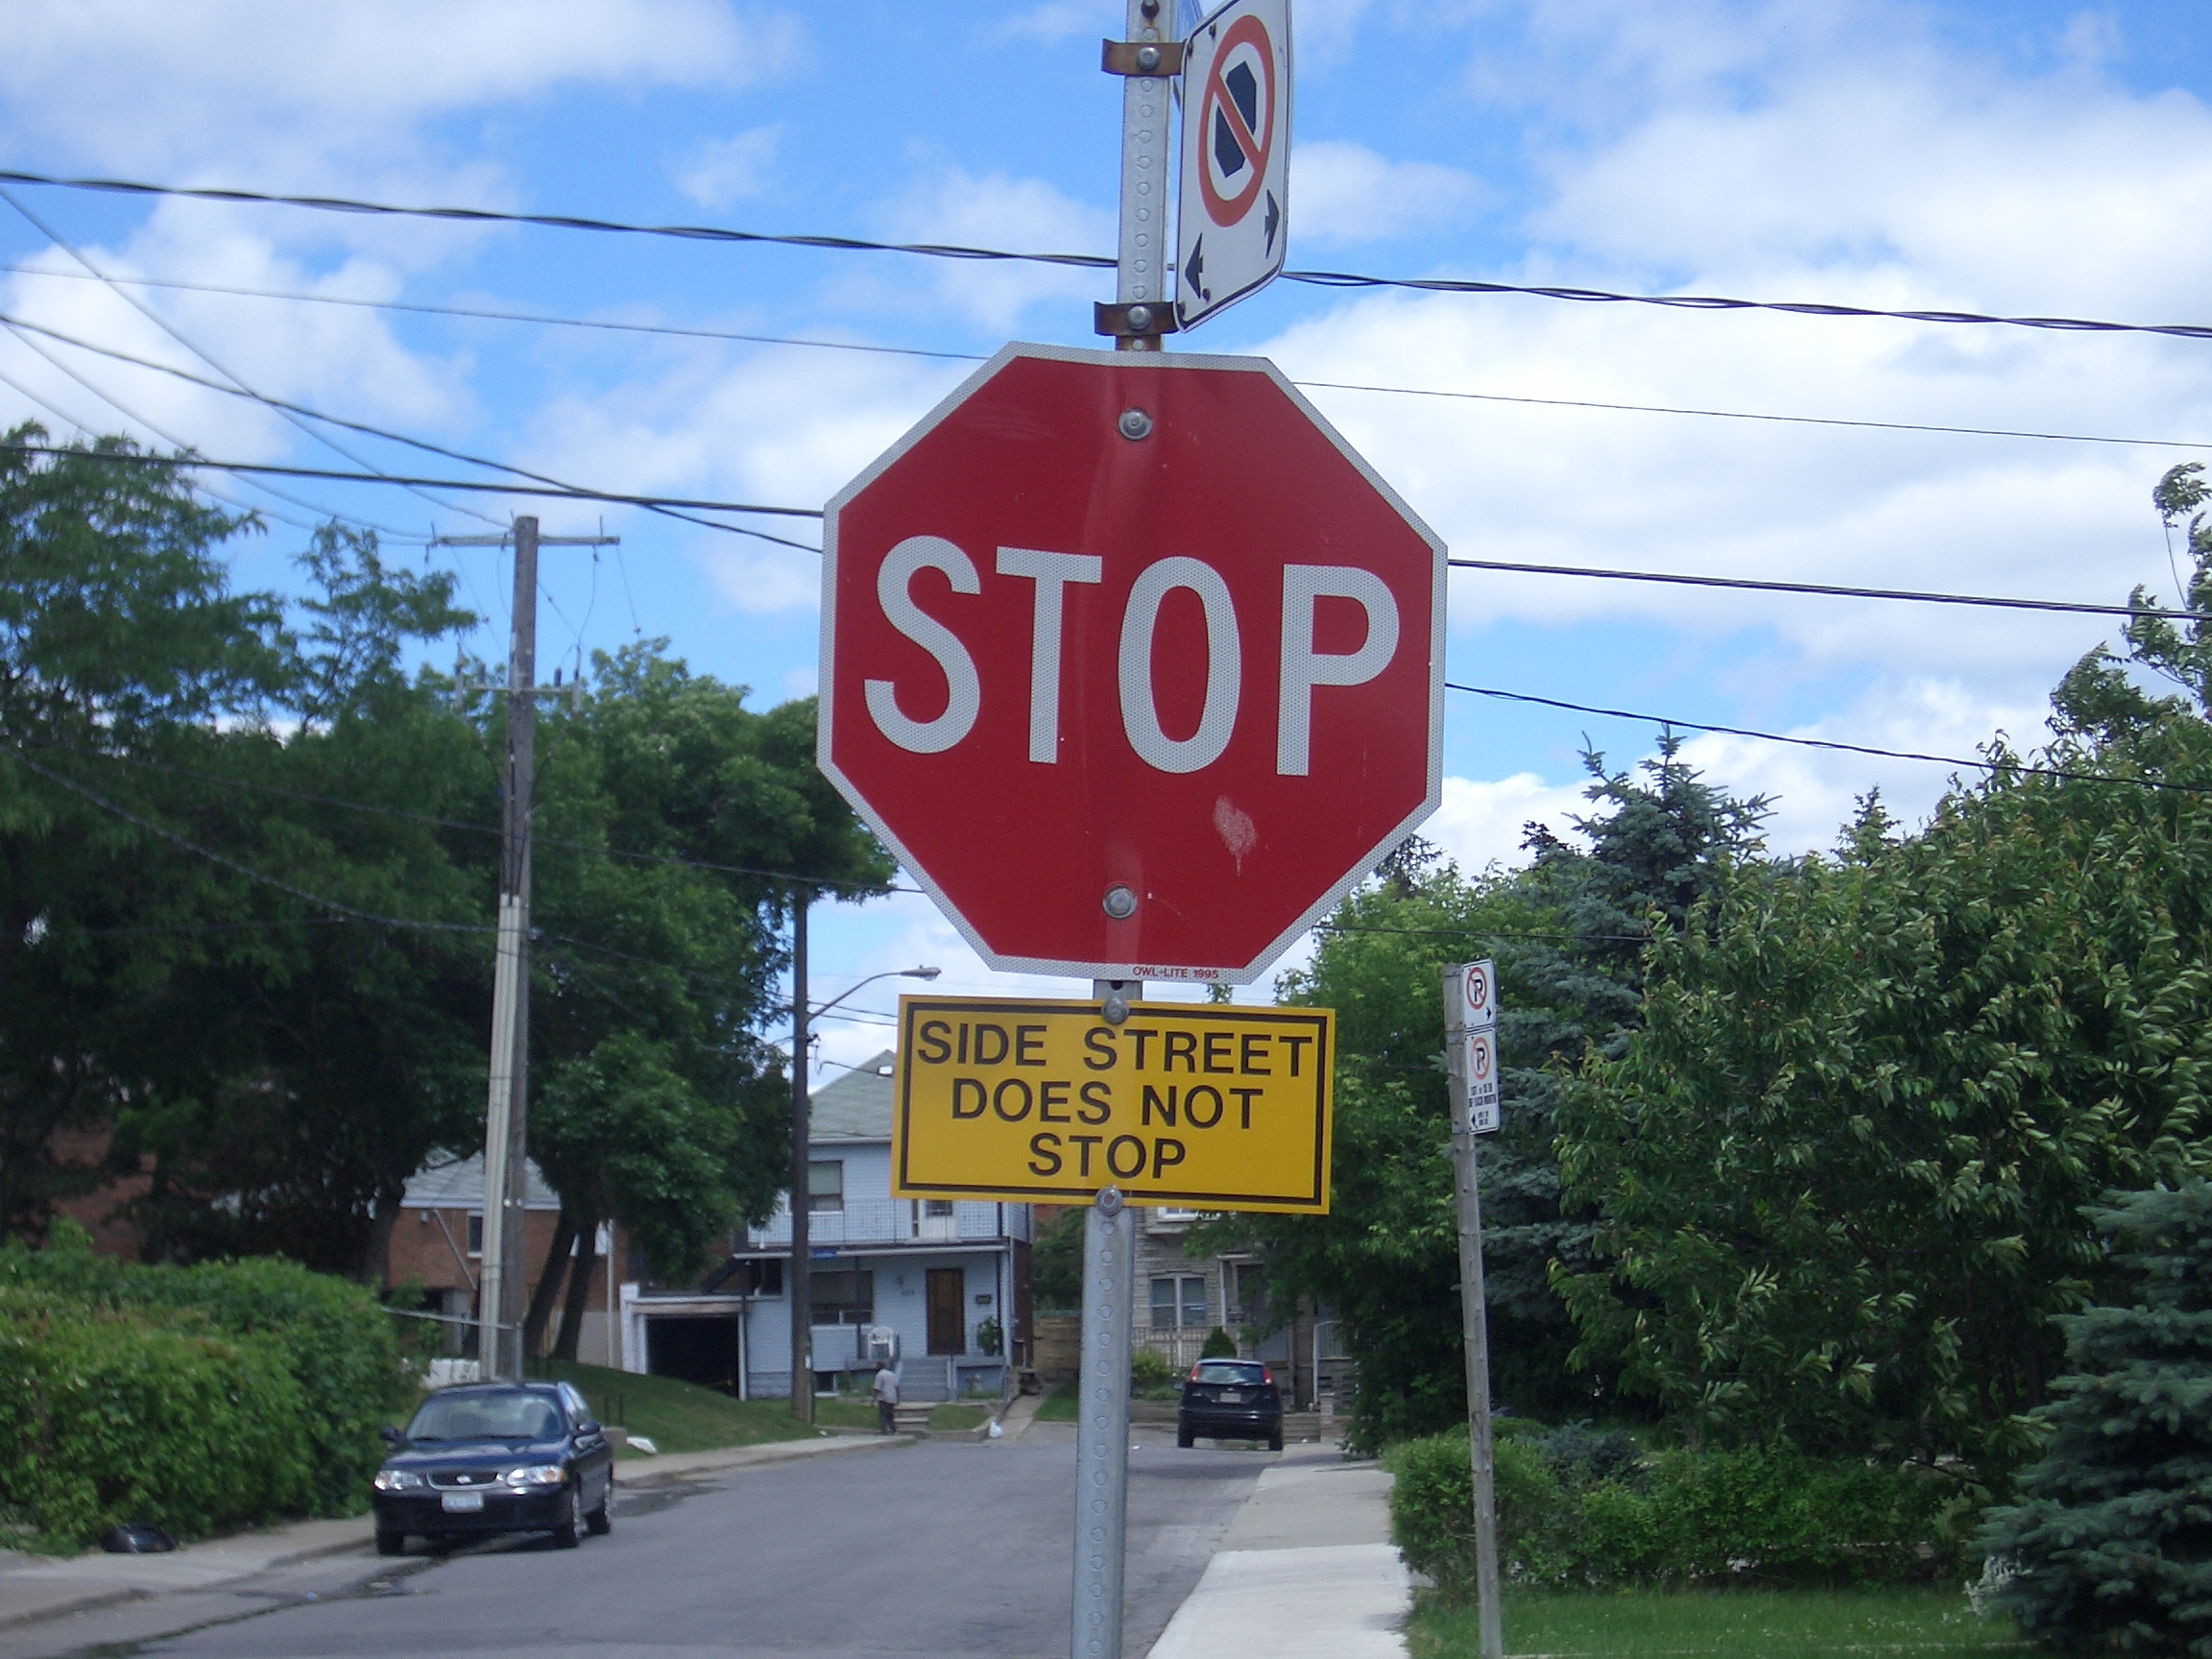 [Picture: Side Street Does Not Stop]